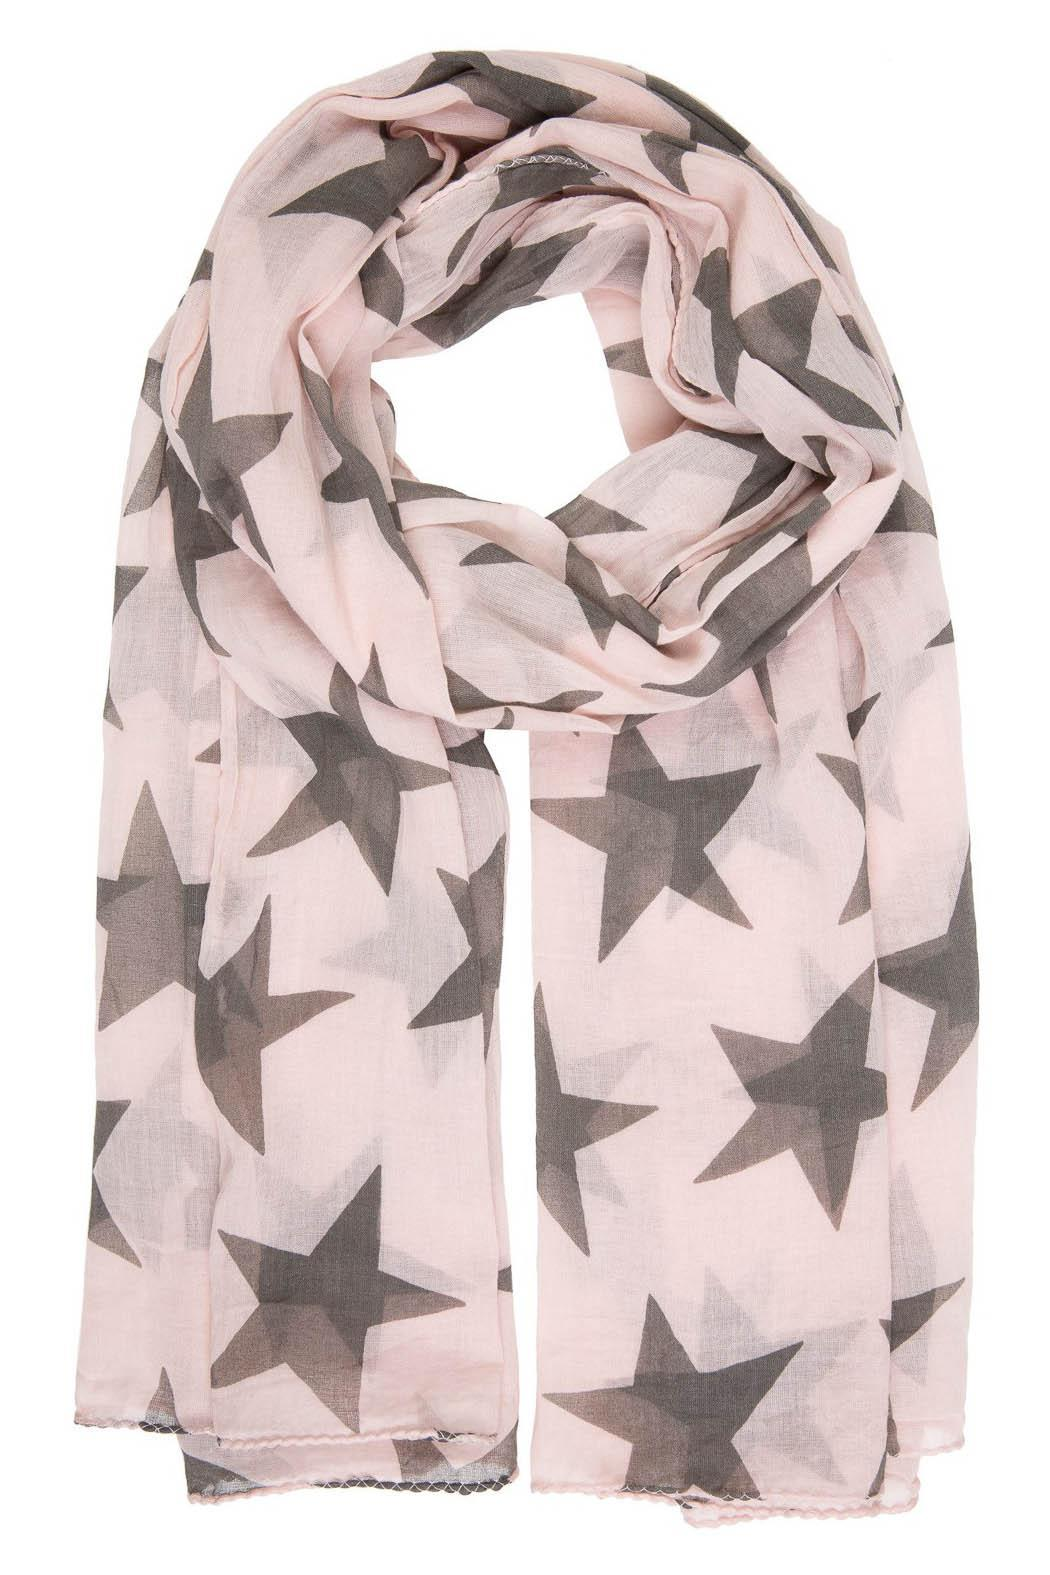 Sale - Twilight Star Scarf - Beck Sönder Gaard Becksöndergaard Sale Low Cost LHEkr